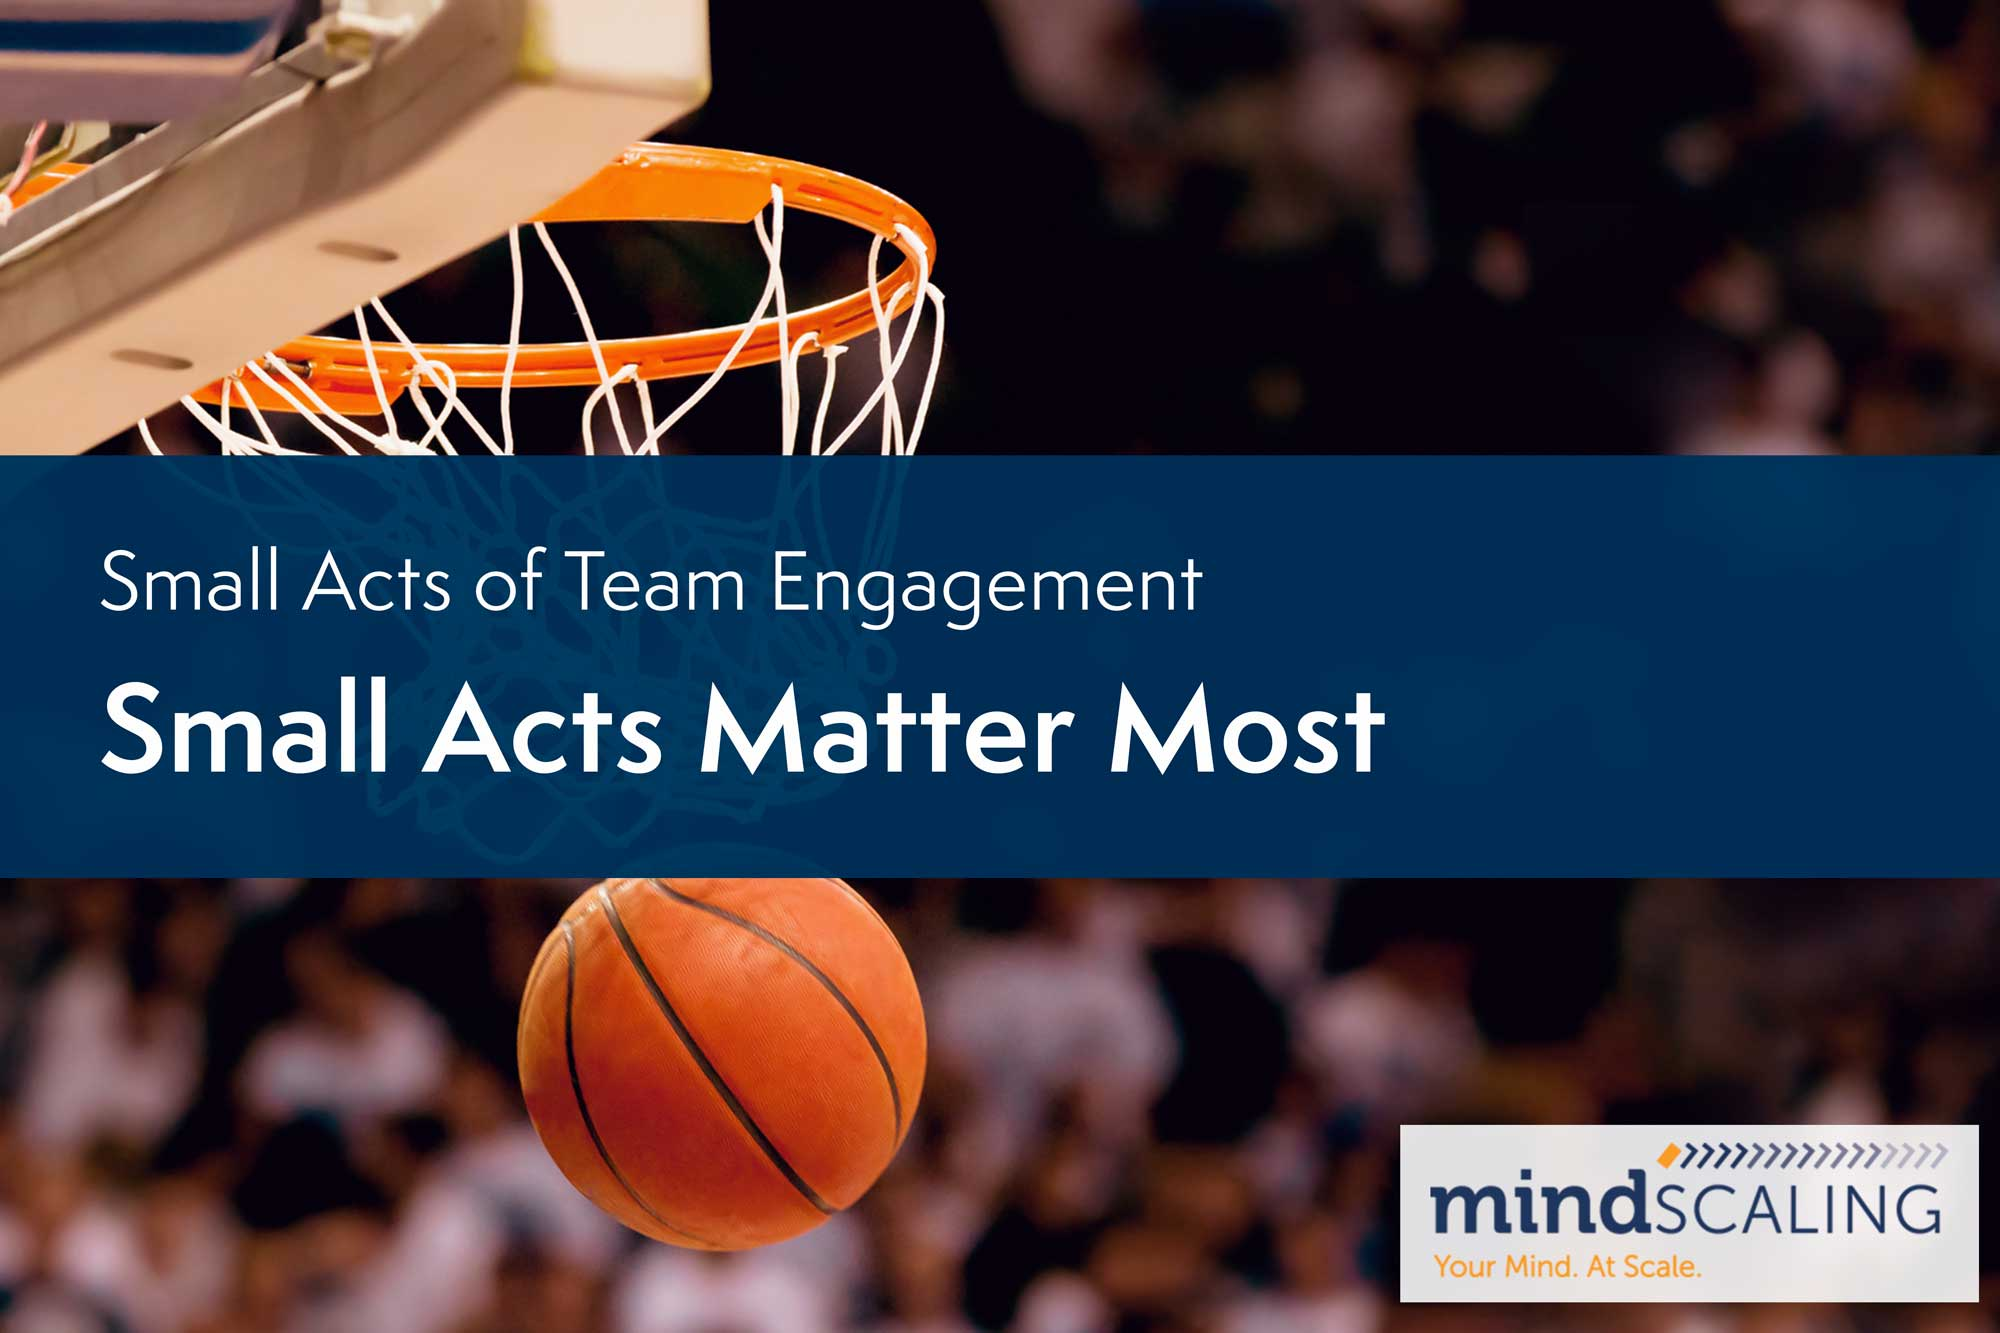 Small Acts of Team Engagement: Small Acts Matter Most image